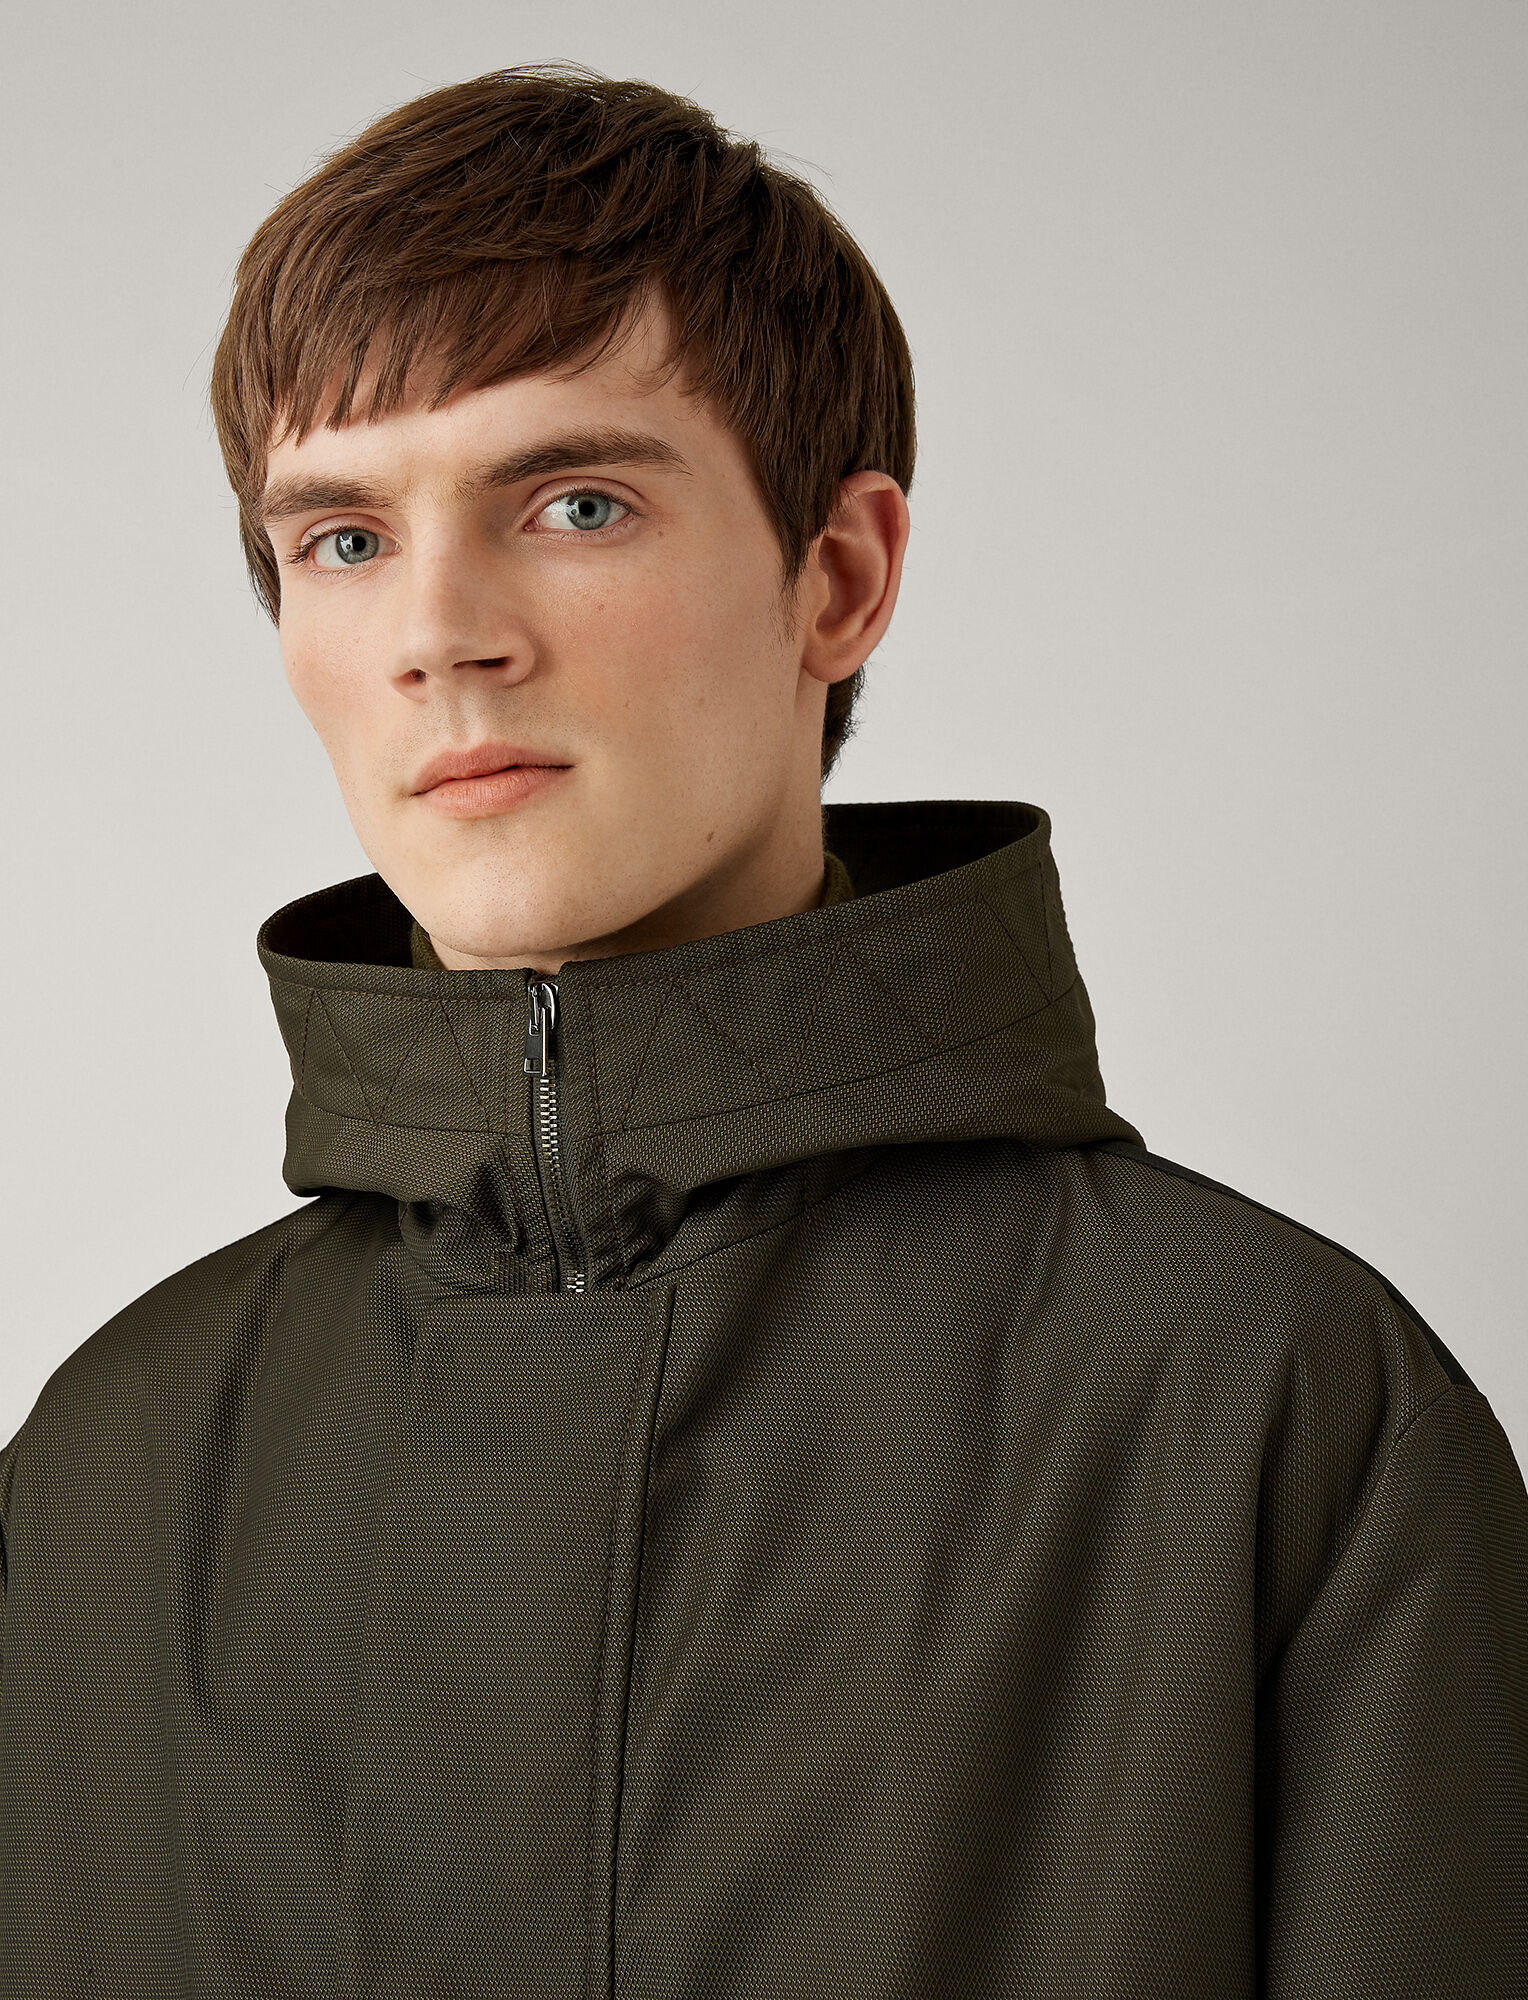 Joseph, Aspin Textured Nylon Coat, in FOREST